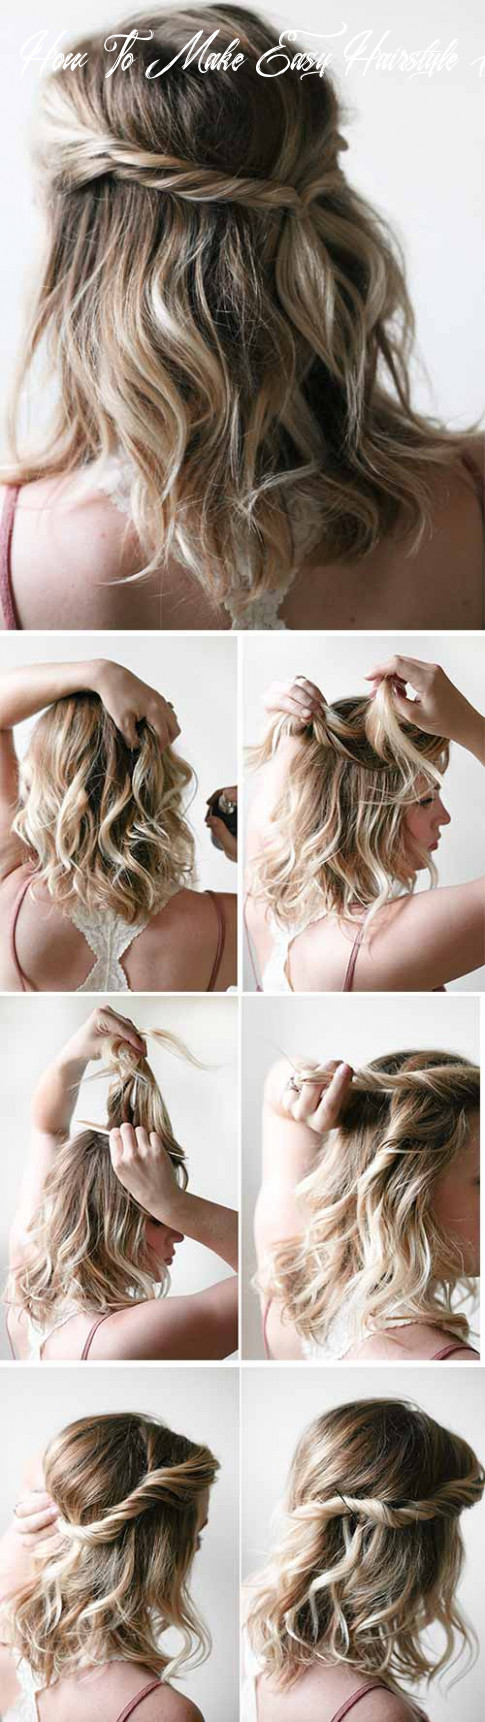 11 incredible diy short hairstyles a step by step guide how to make easy hairstyle for short hair